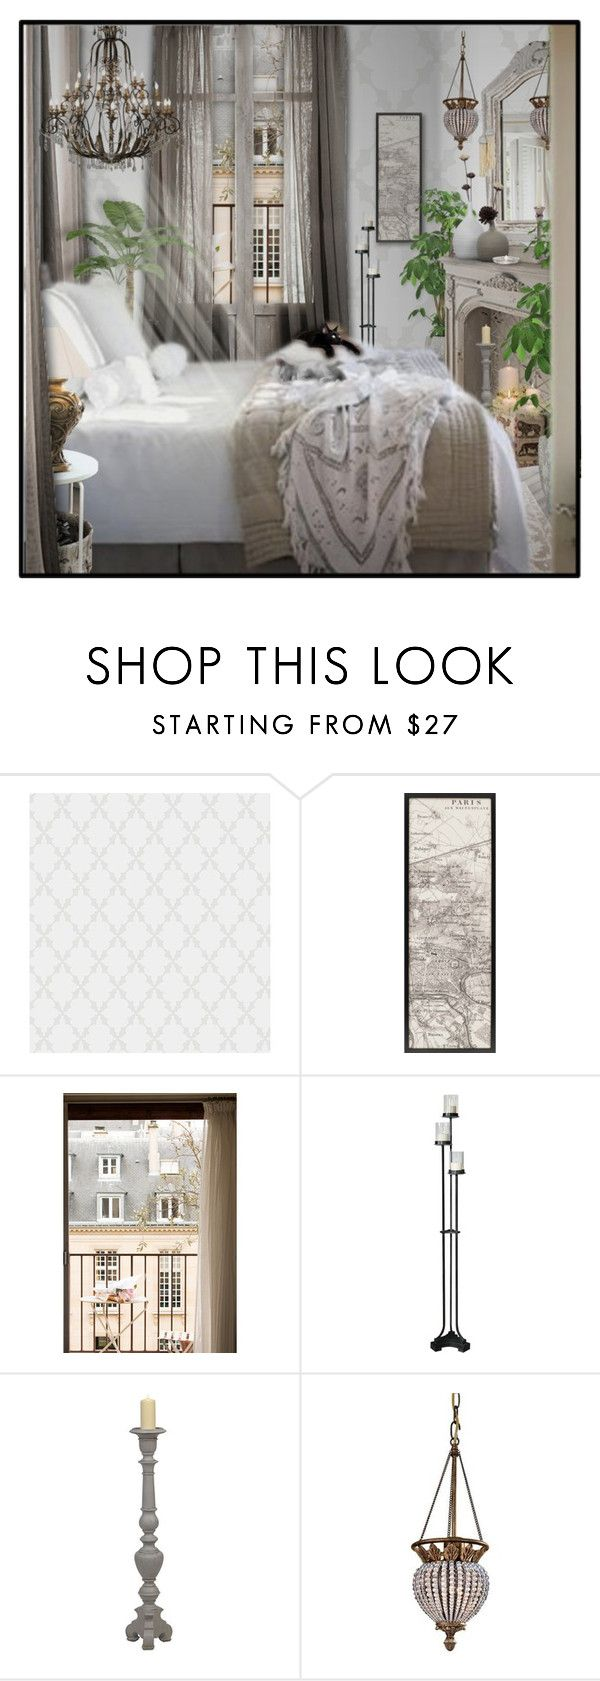 """""""Paris Apartment"""" by signaturenails-dstanley ❤ liked on Polyvore featuring interior, interiors, interior design, home, home decor, interior decorating, Loloi Rugs, Uttermost, Home Decorators Collection and Ivanka Trump"""